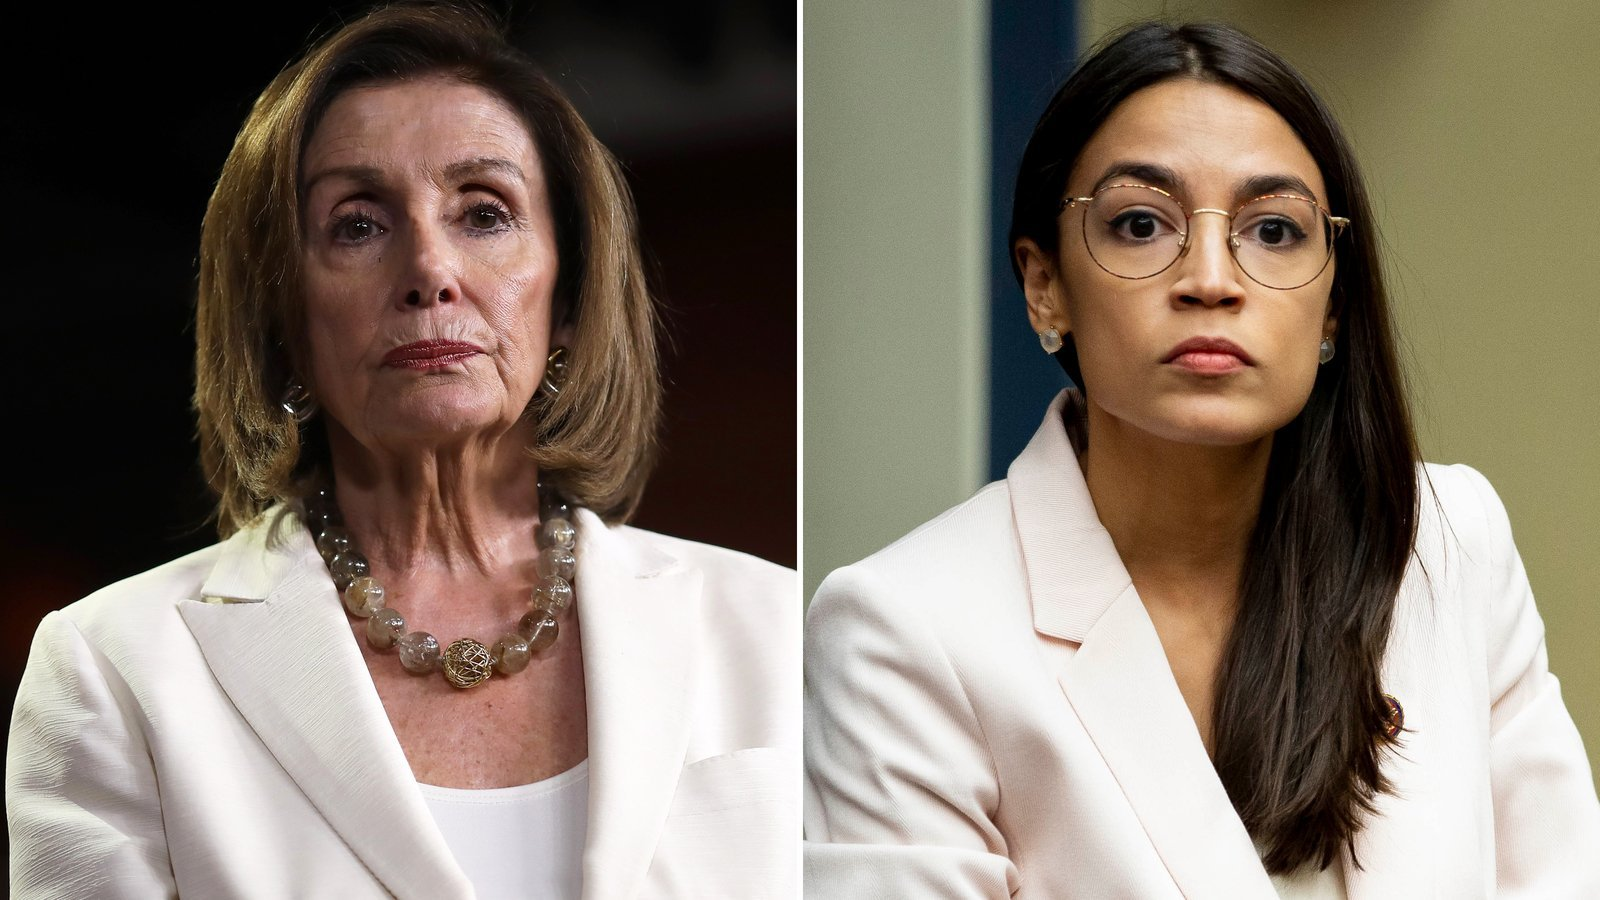 Pelosi and Alexandria Ocasio-Cortez to meet next week